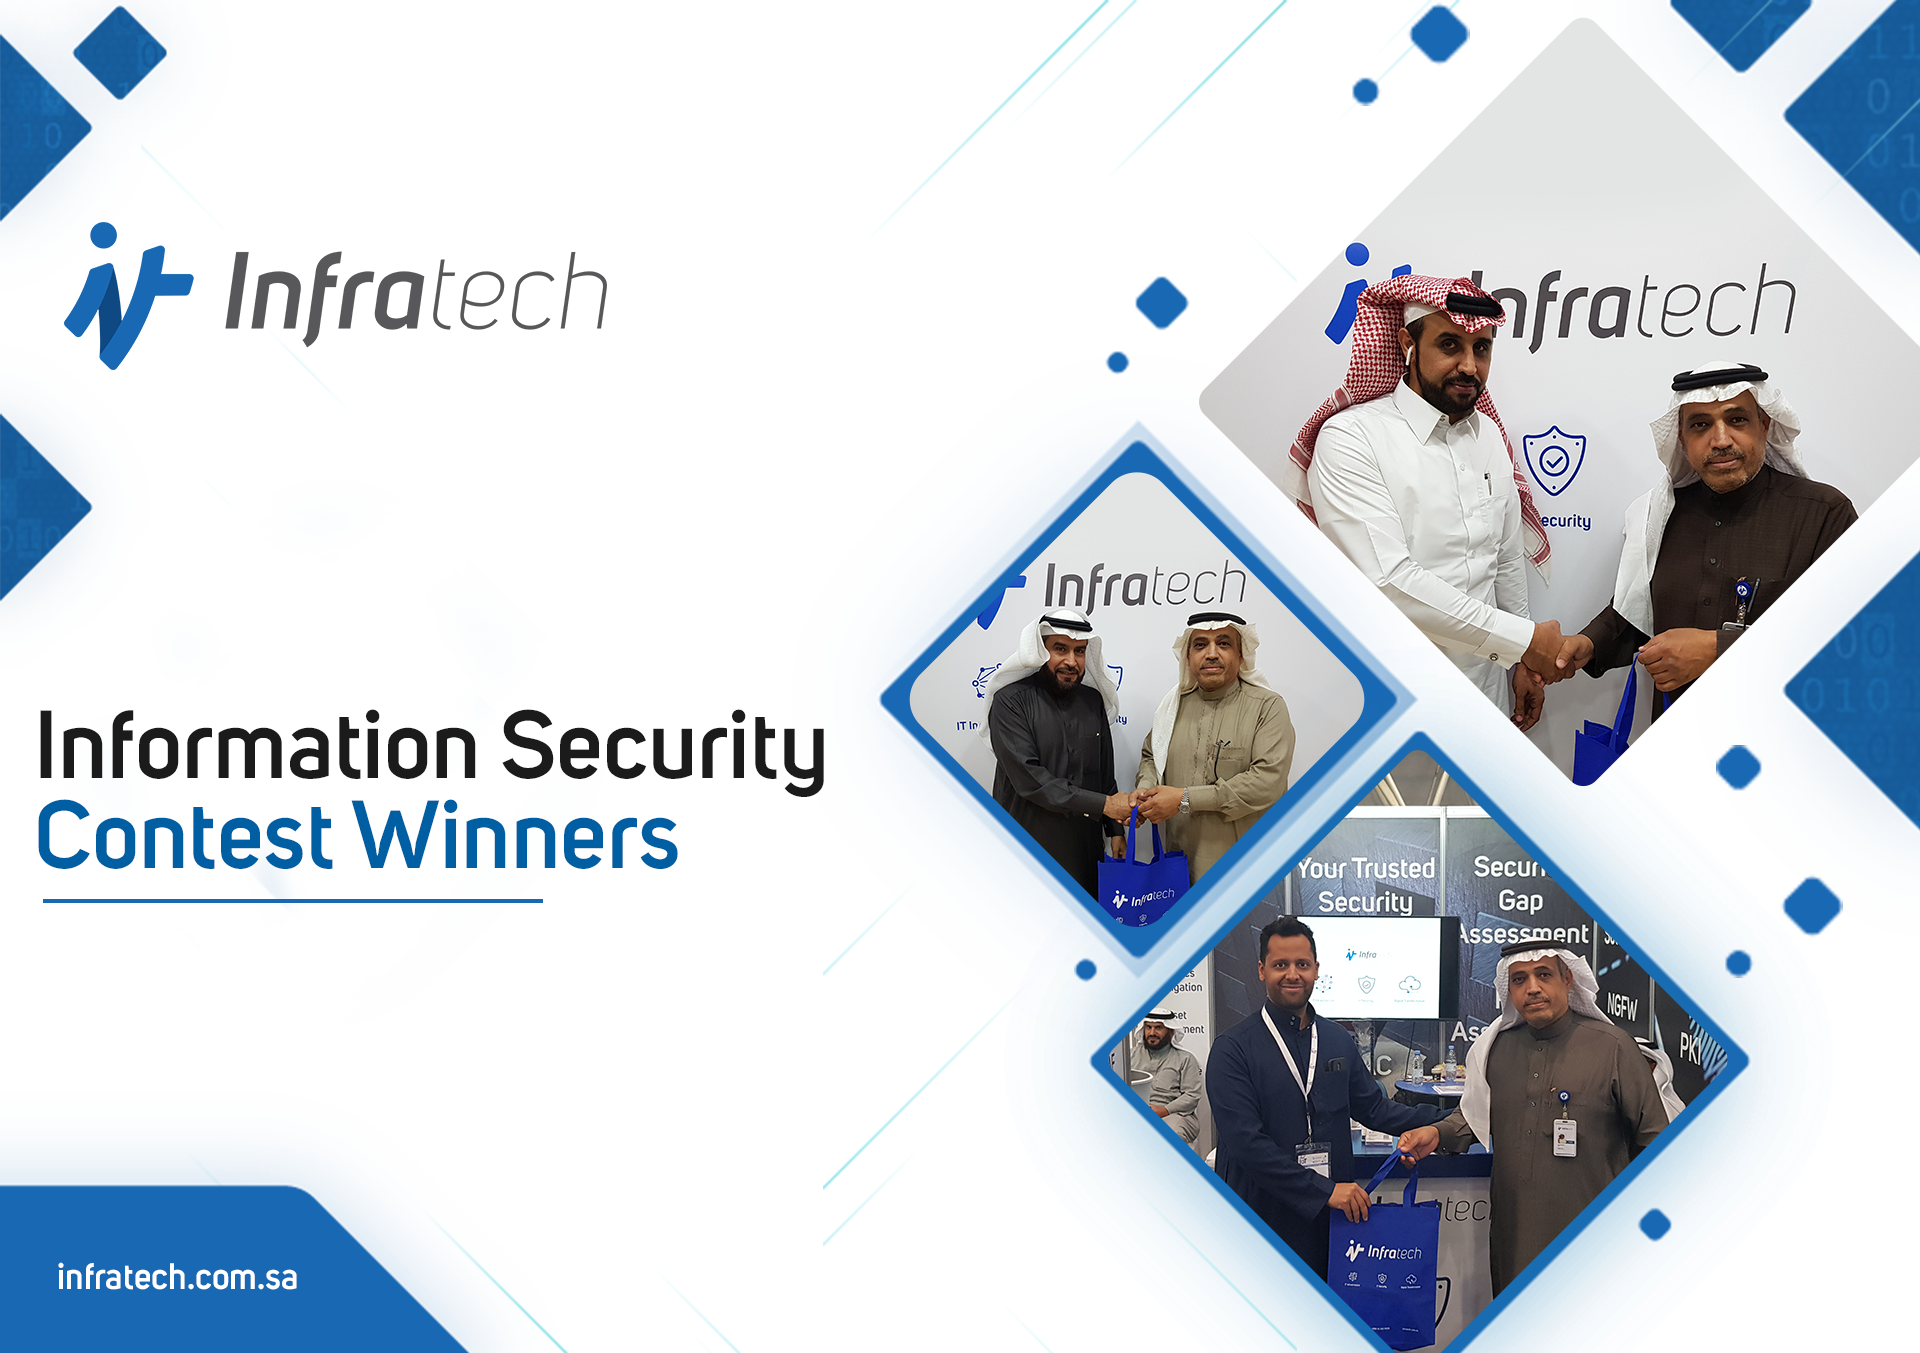 Information Security Contest Winners - Infratech